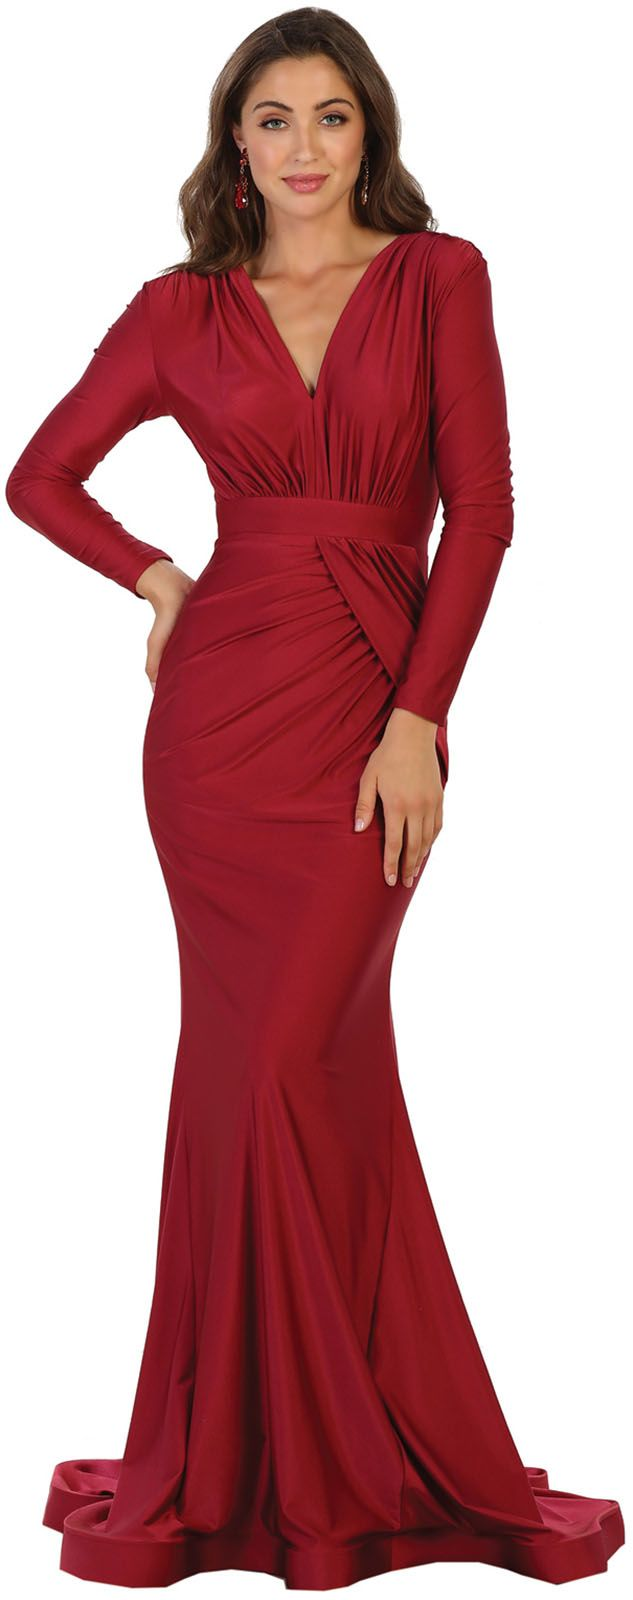 May Queen Simple Long Sleeve Stretchy Mermaid Evening Gown Walmart Com Long Sleeve Evening Gowns Evening Gowns Mermaid Evening Gown [ 1600 x 633 Pixel ]